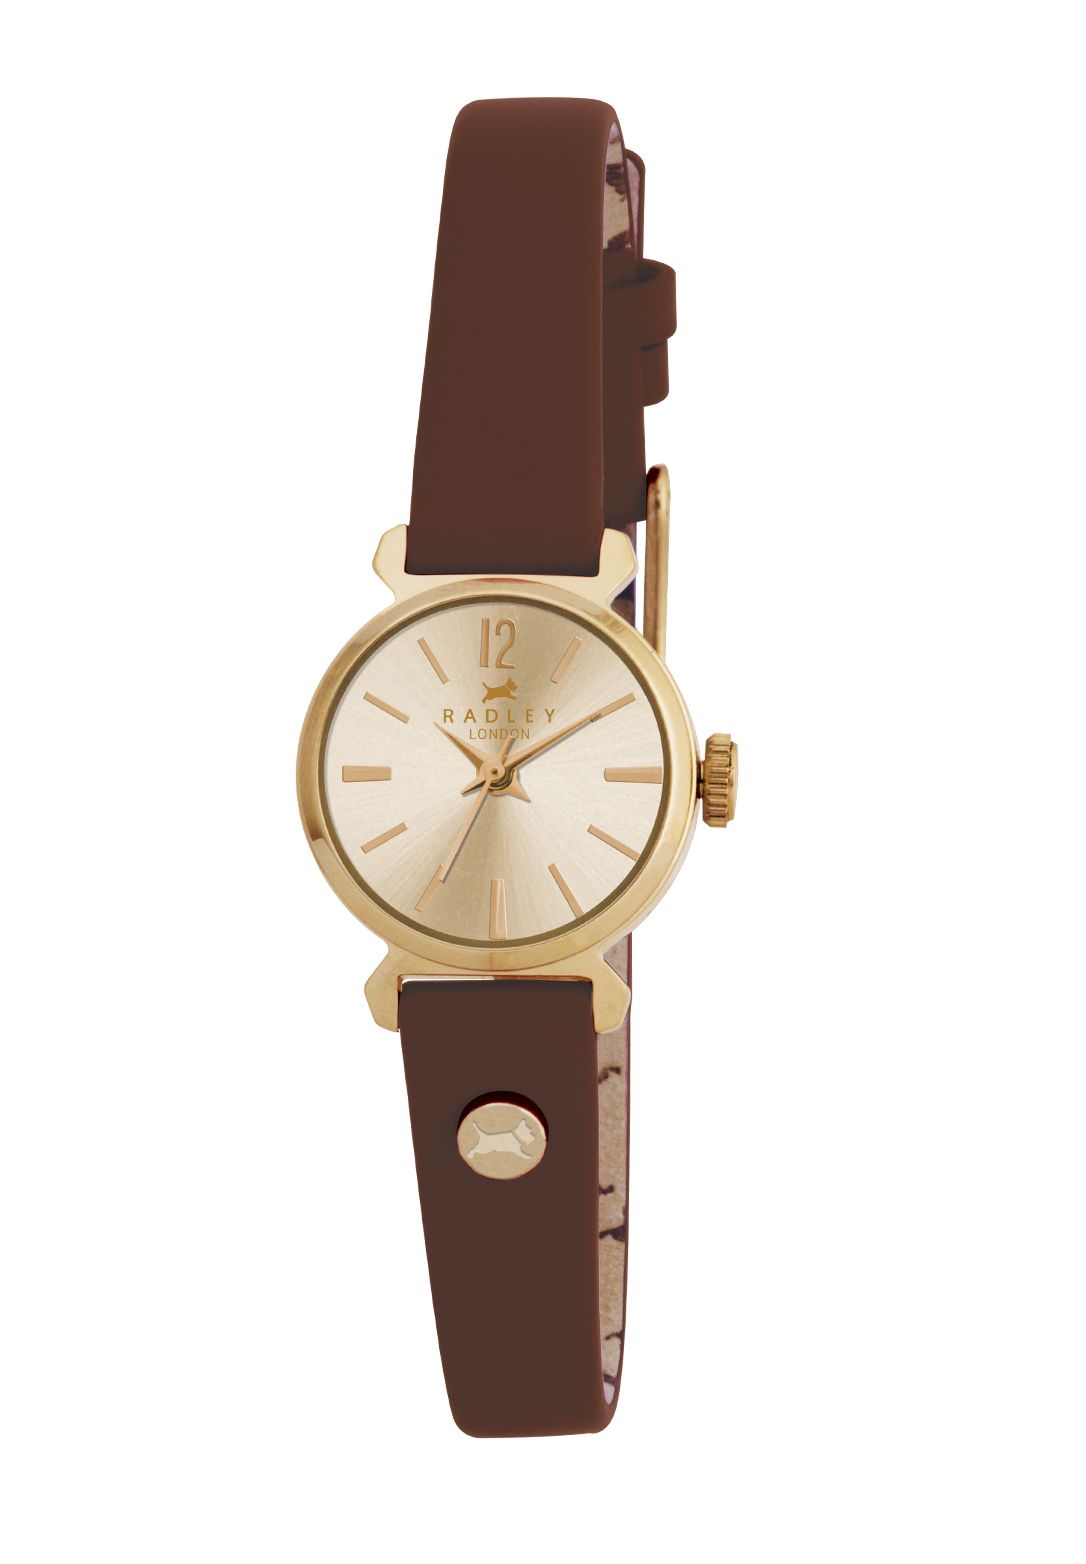 RY2052 Radley Brown Small Vintage Strap Watch